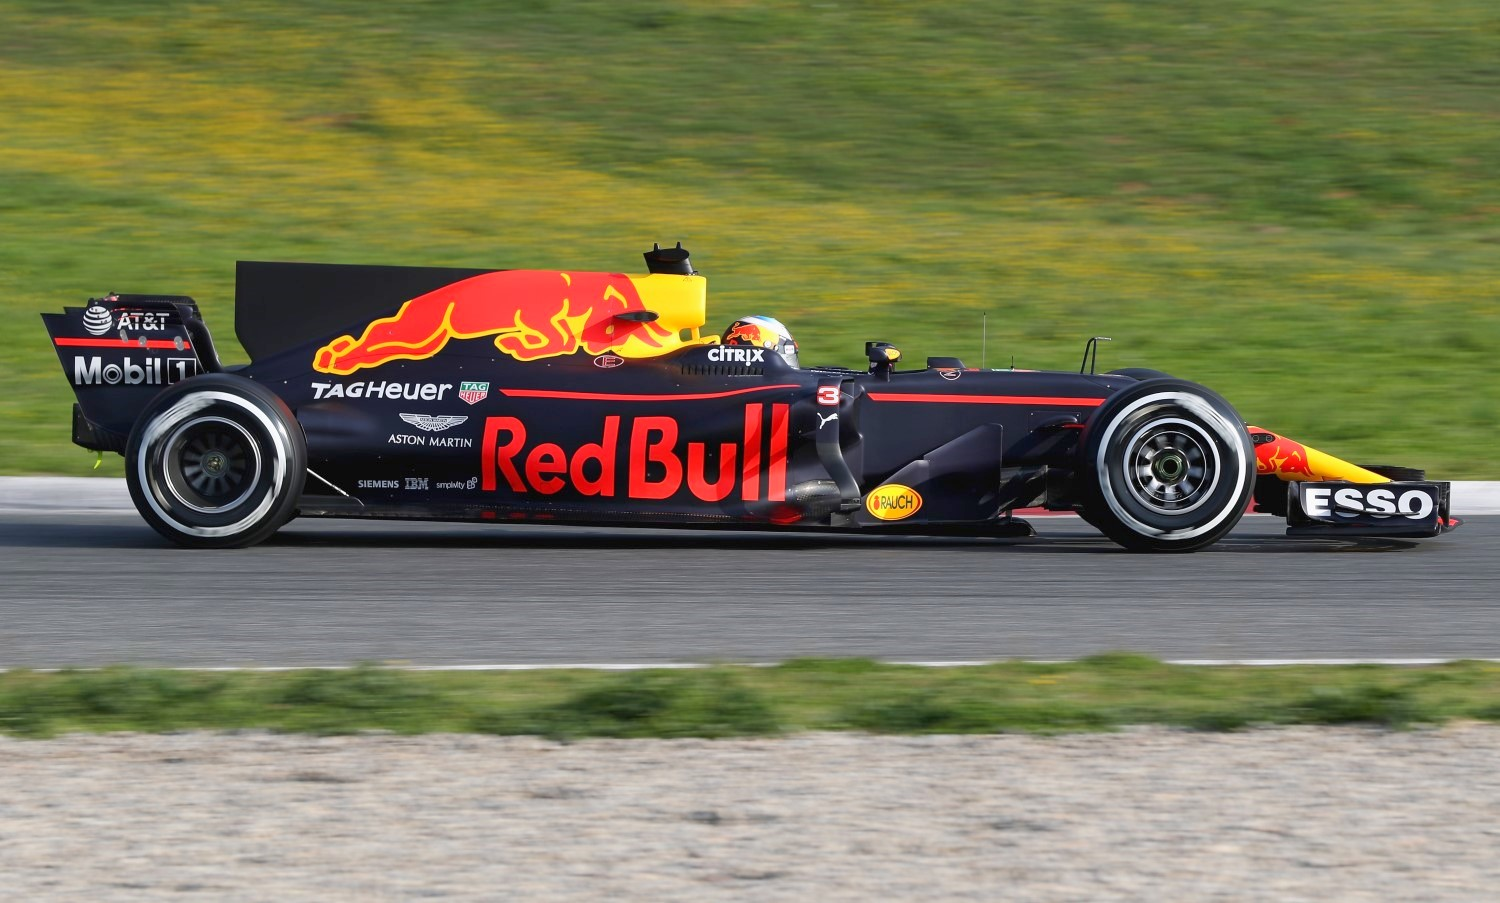 Riccardo in the Red Bull